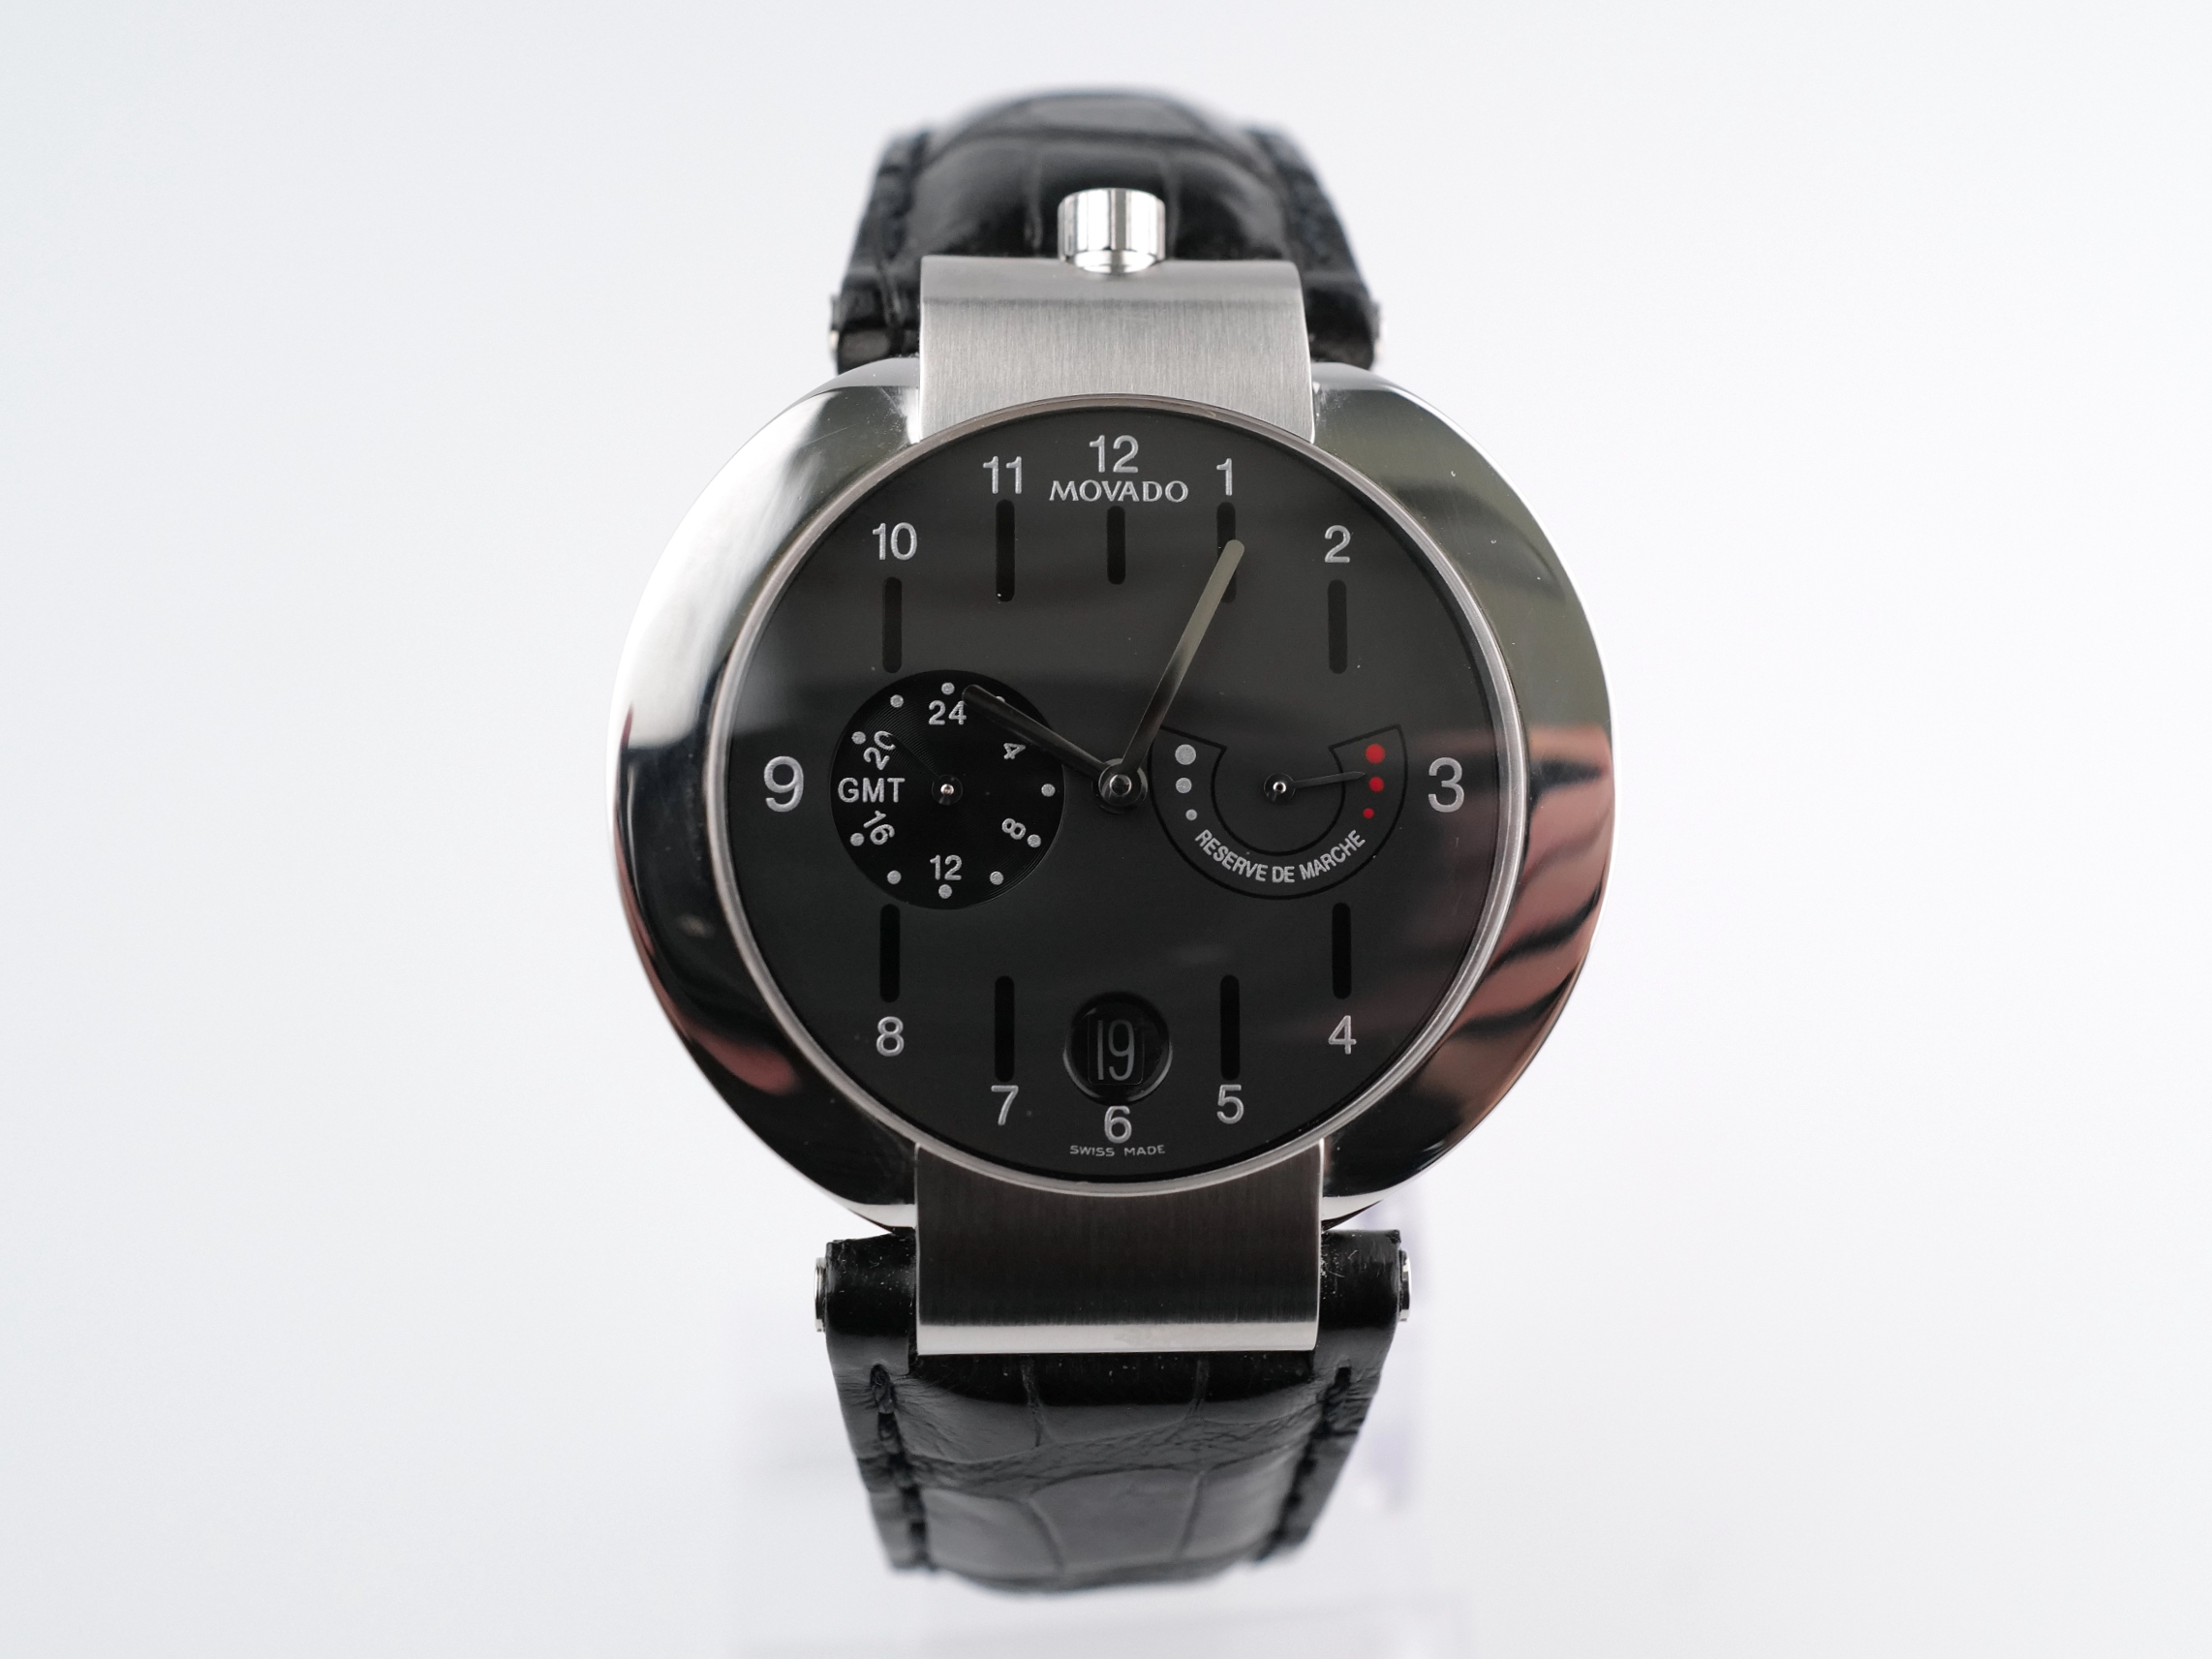 Movado Elliptica Power Reserve GMT